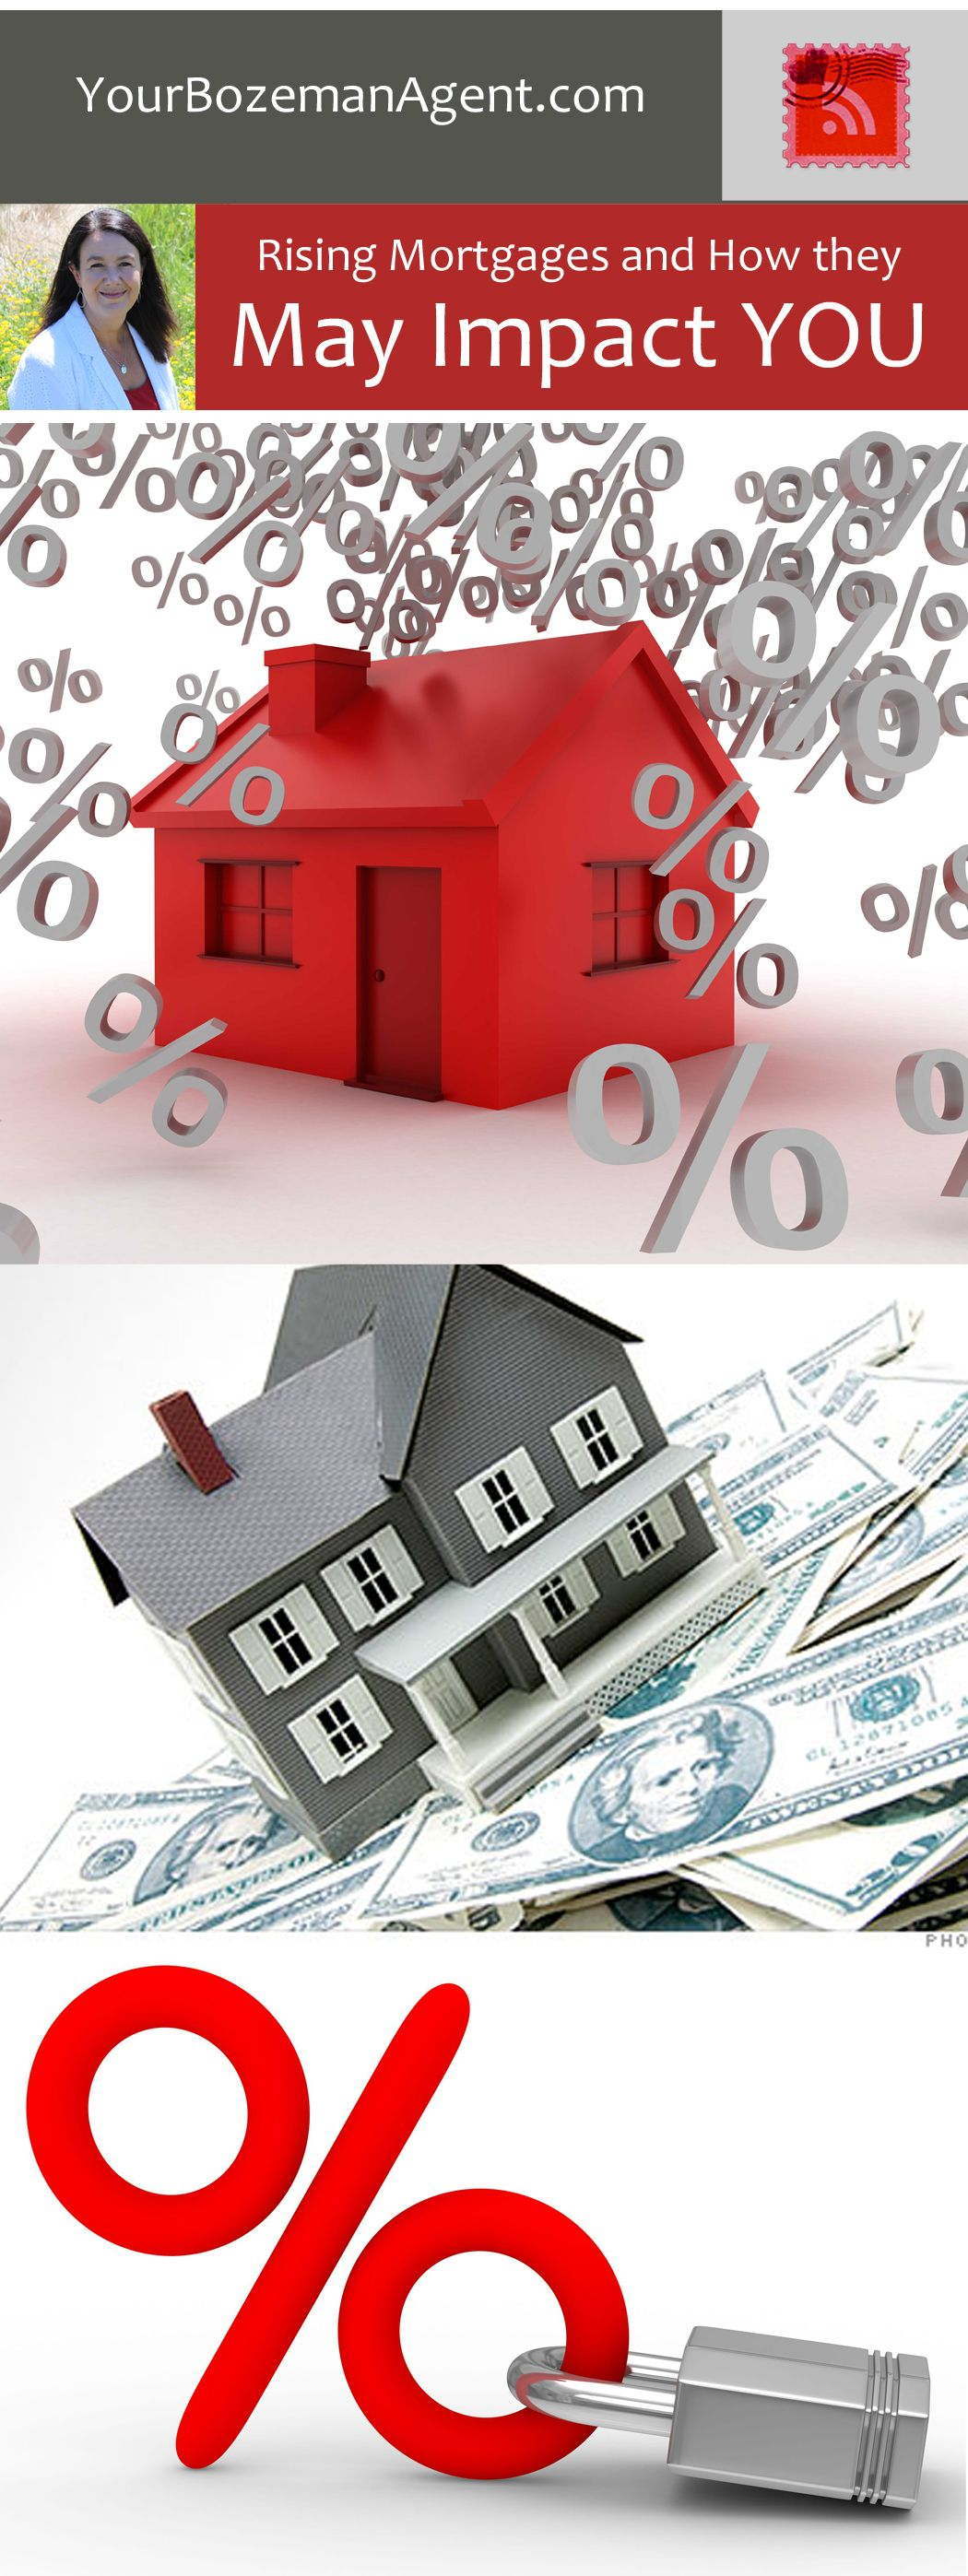 http://yourbozemanagent.com/2014/02/05/rising-mortgages-and-how-they-may-impact-you/